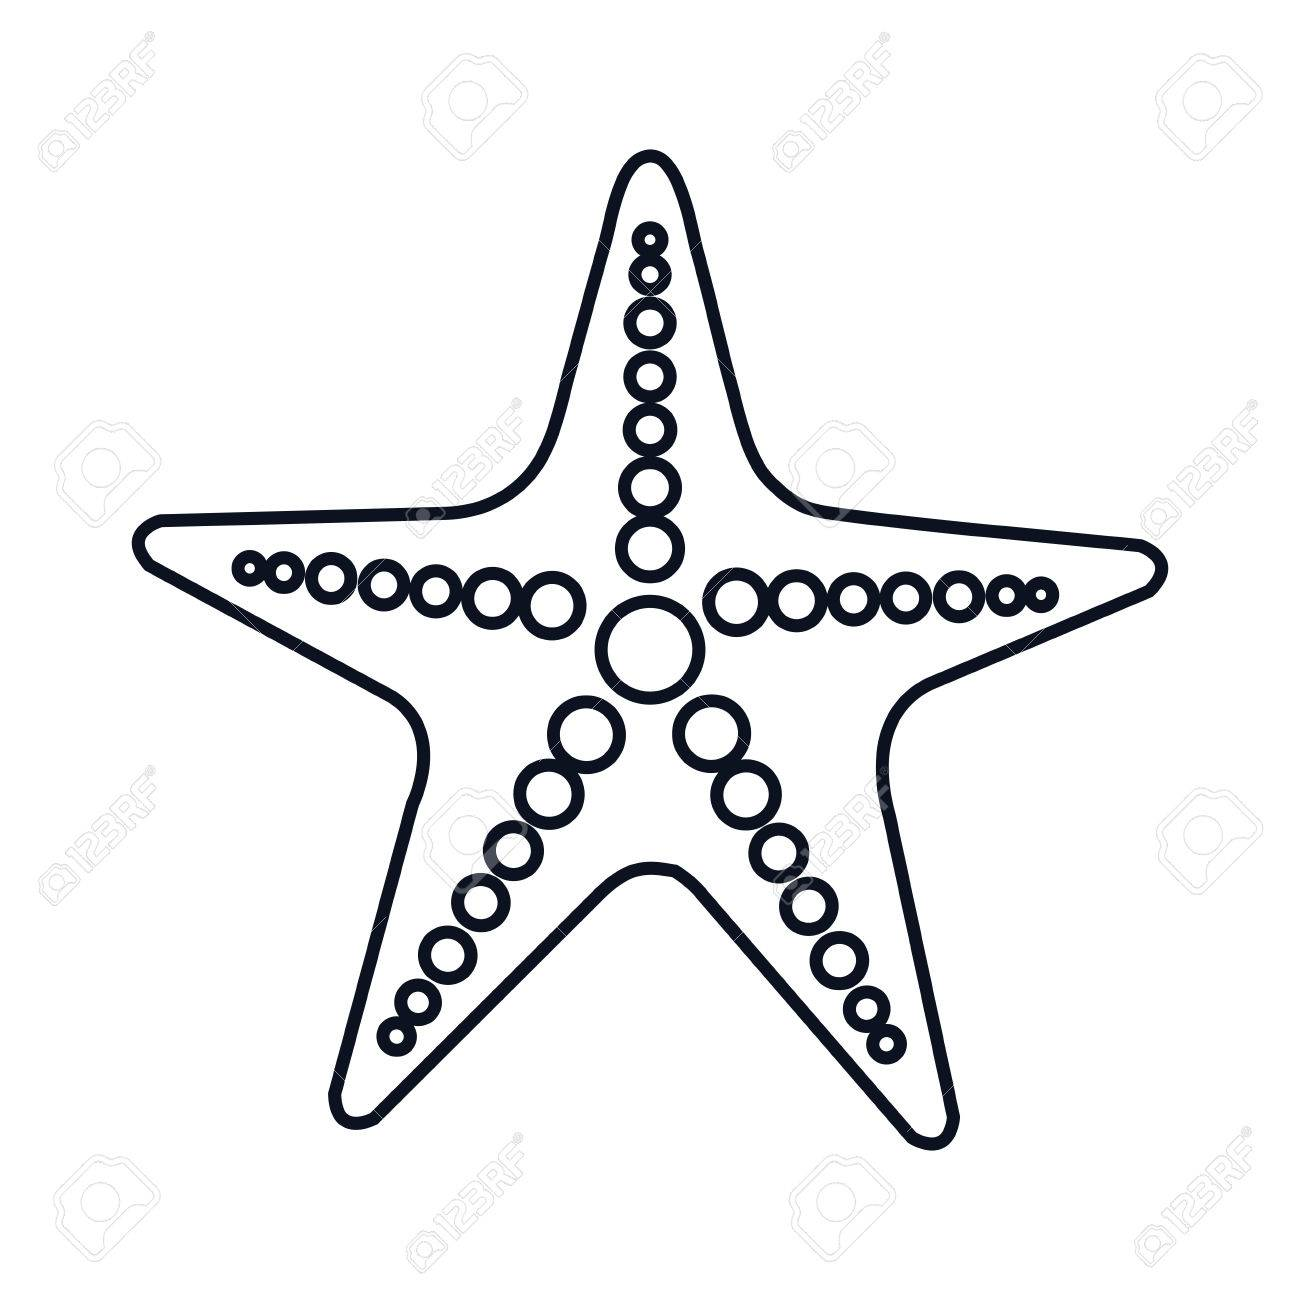 1300x1300 Sea Star Starship Marine Animal. Oceand And Sea Symbol. Vector